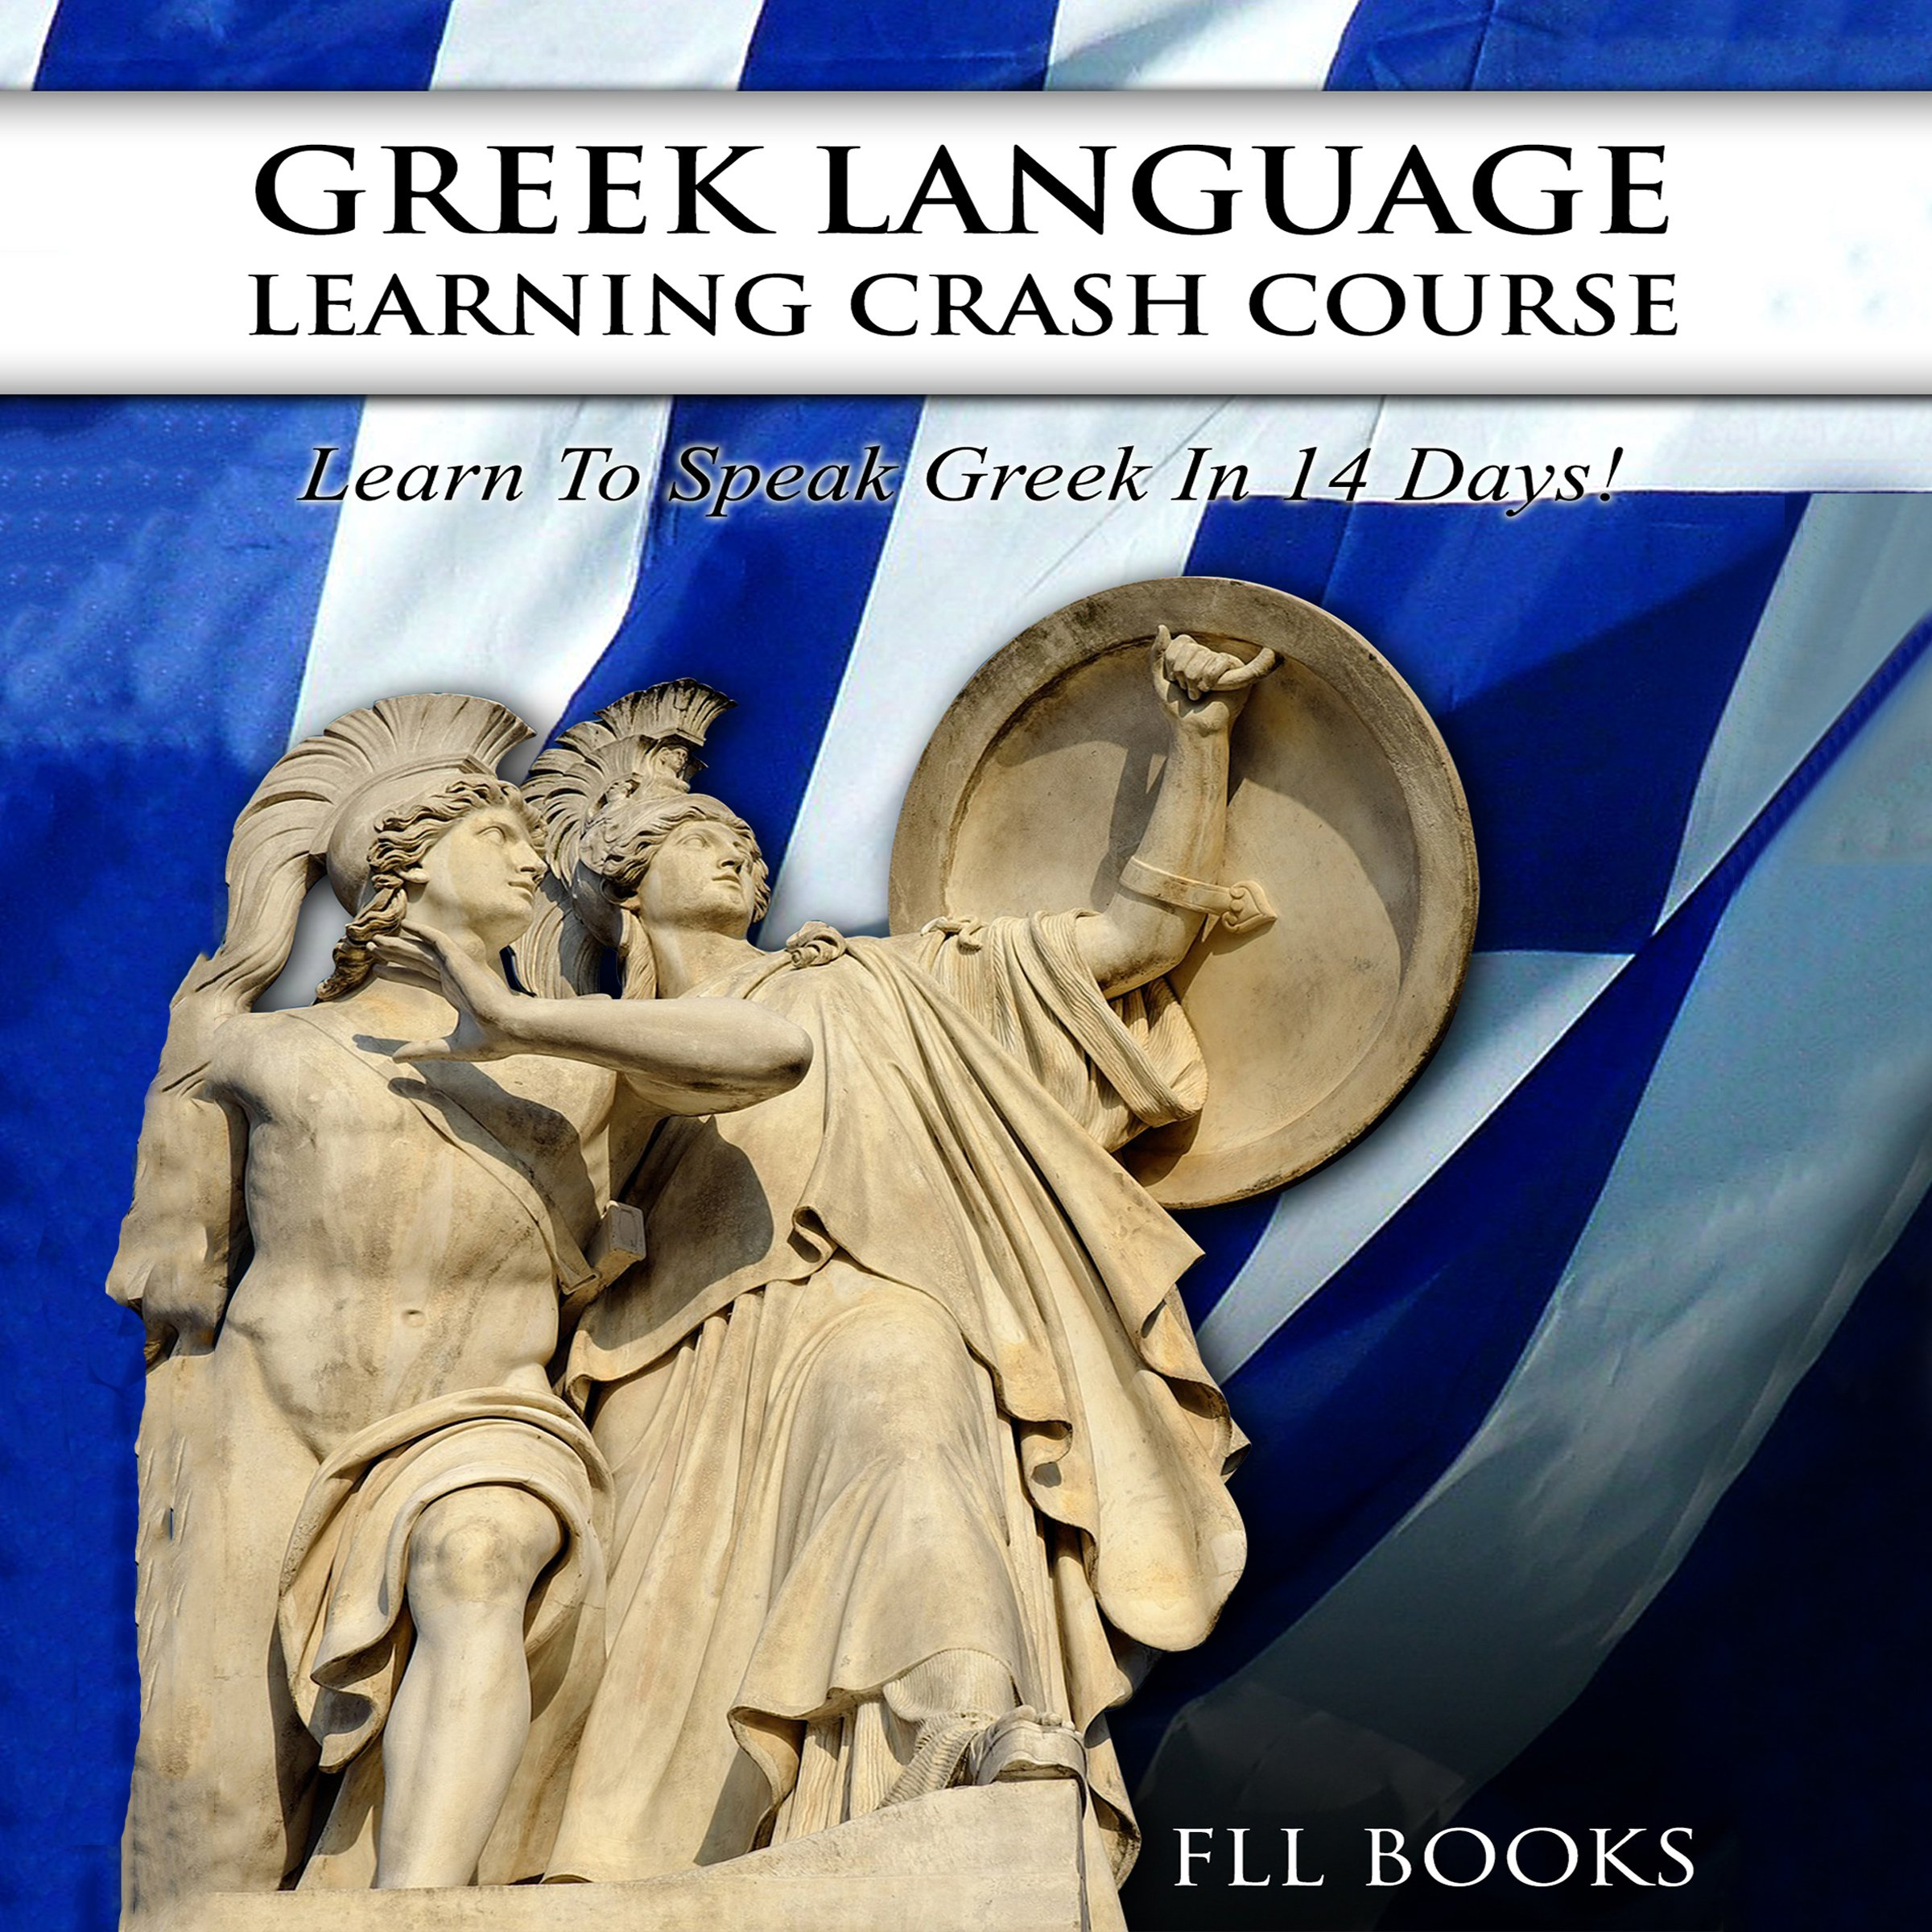 Greek Language Learning Crash Course  Learn To Speak Greek In 14 Days